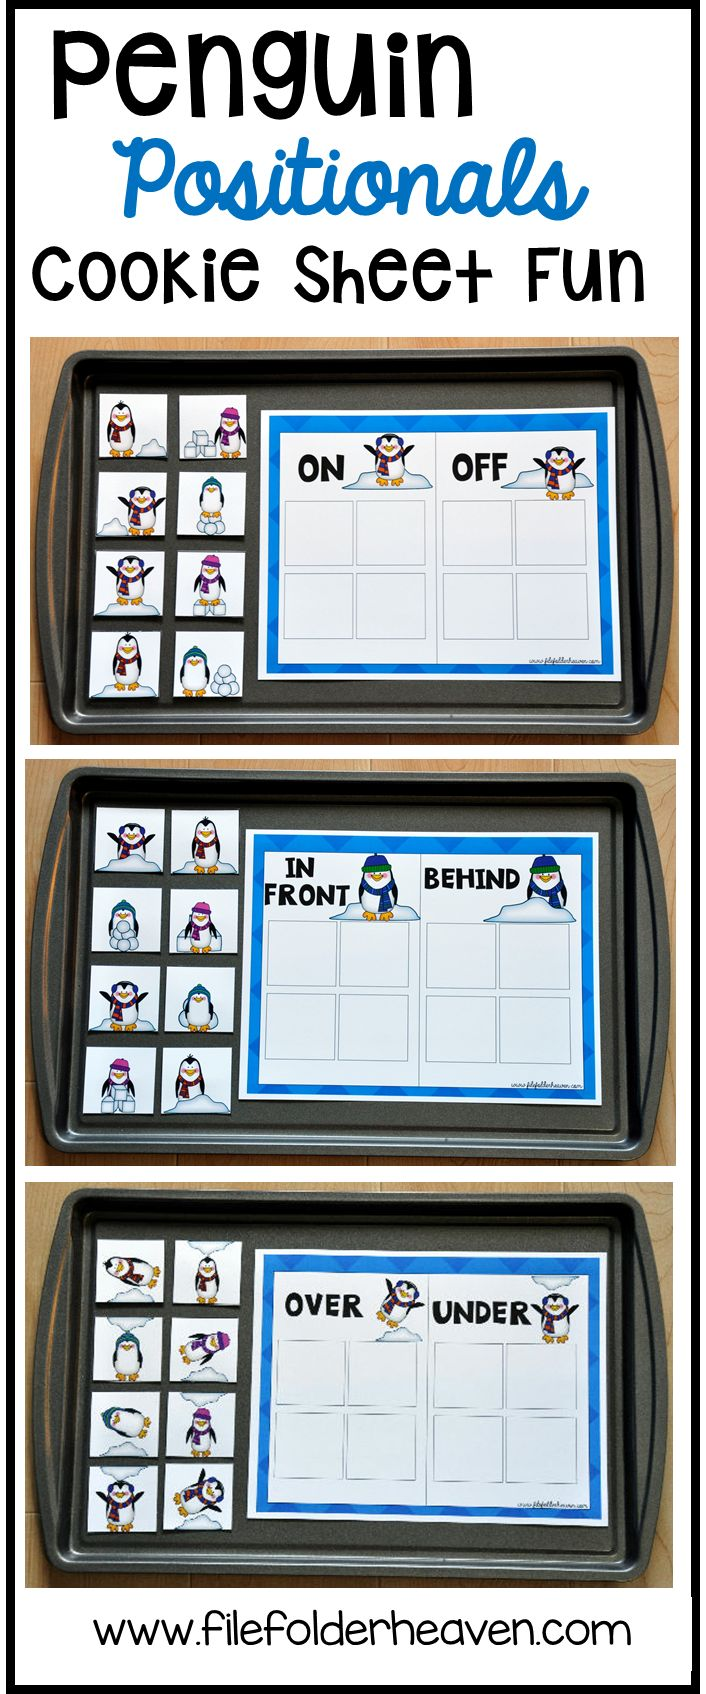 These Penguin Positionals Cookie Sheet Activities include eight unique cookie…